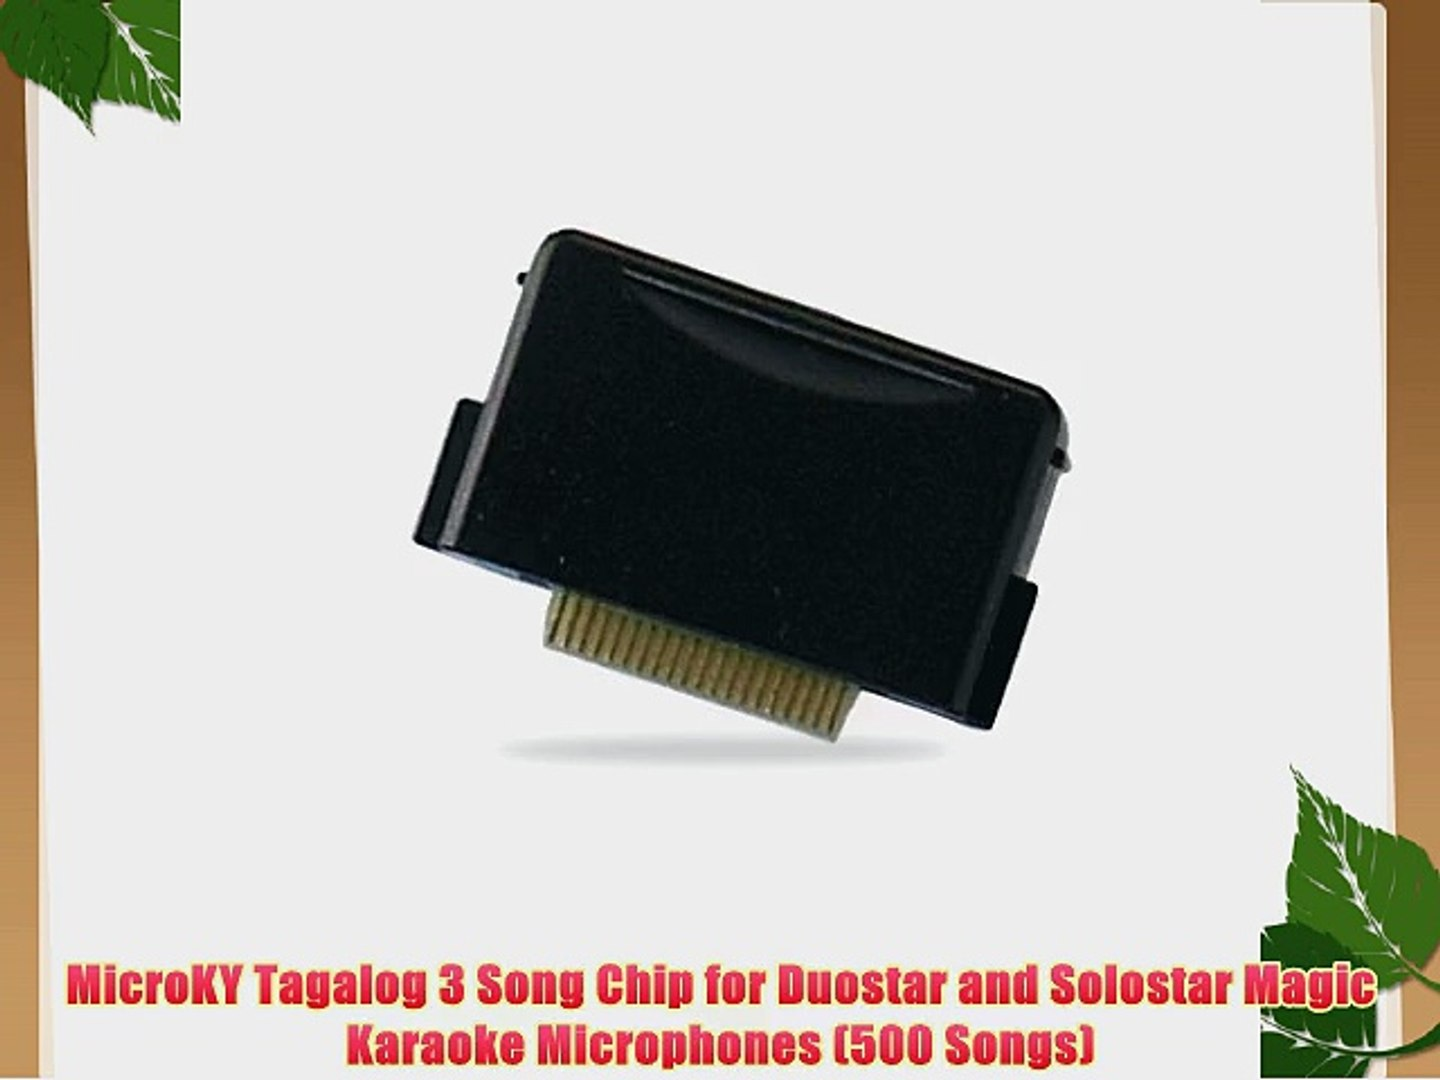 MicroKY Tagalog 3 Song Chip for Duostar and Solostar Magic Karaoke  Microphones (500 Songs)